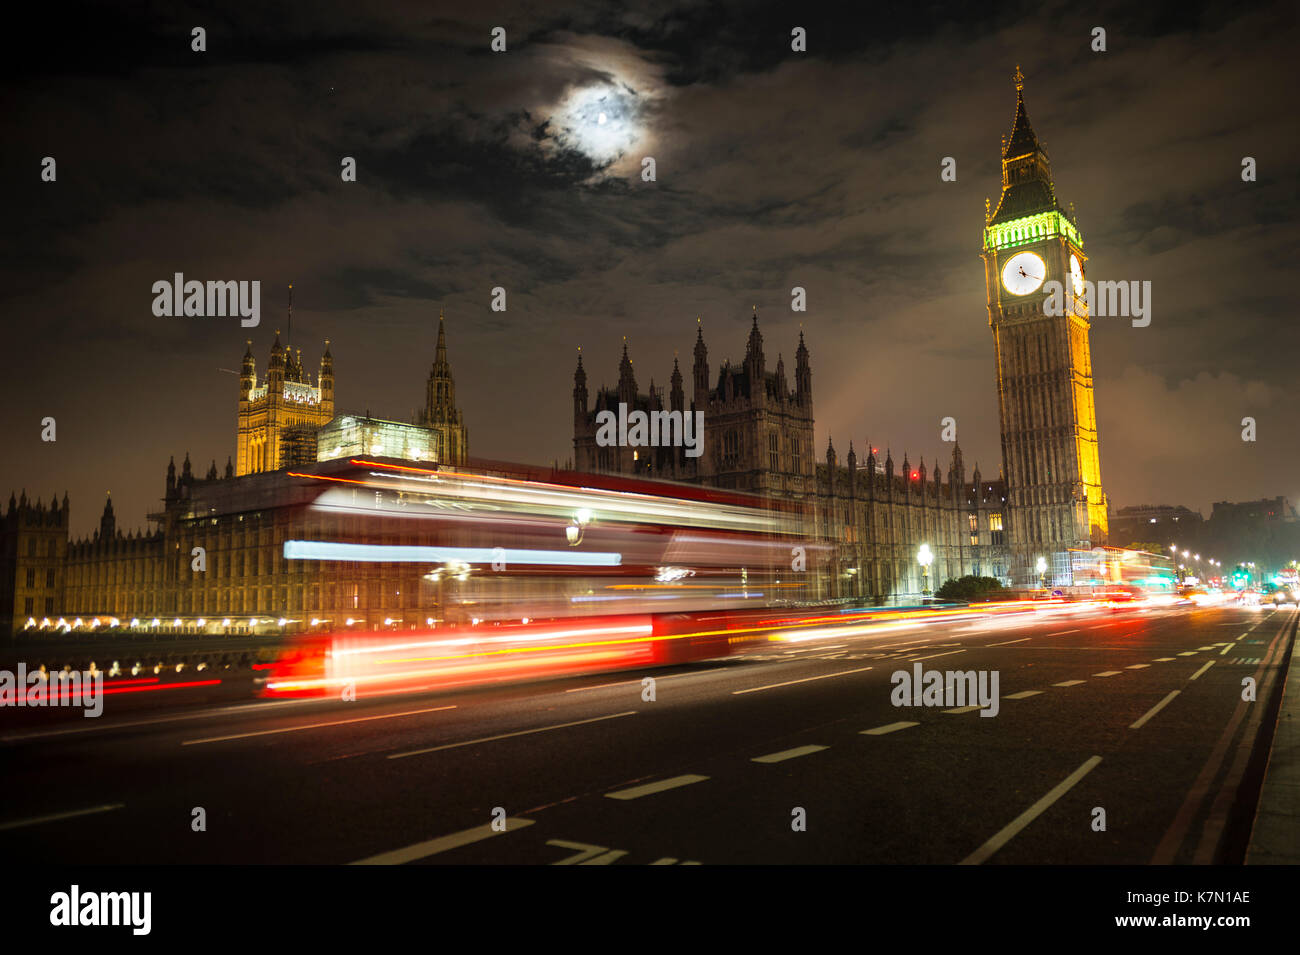 Palace of Westminster with Big Ben at night, red double-decker bus on the Westminster Bridge, motion blur, London, England - Stock Image